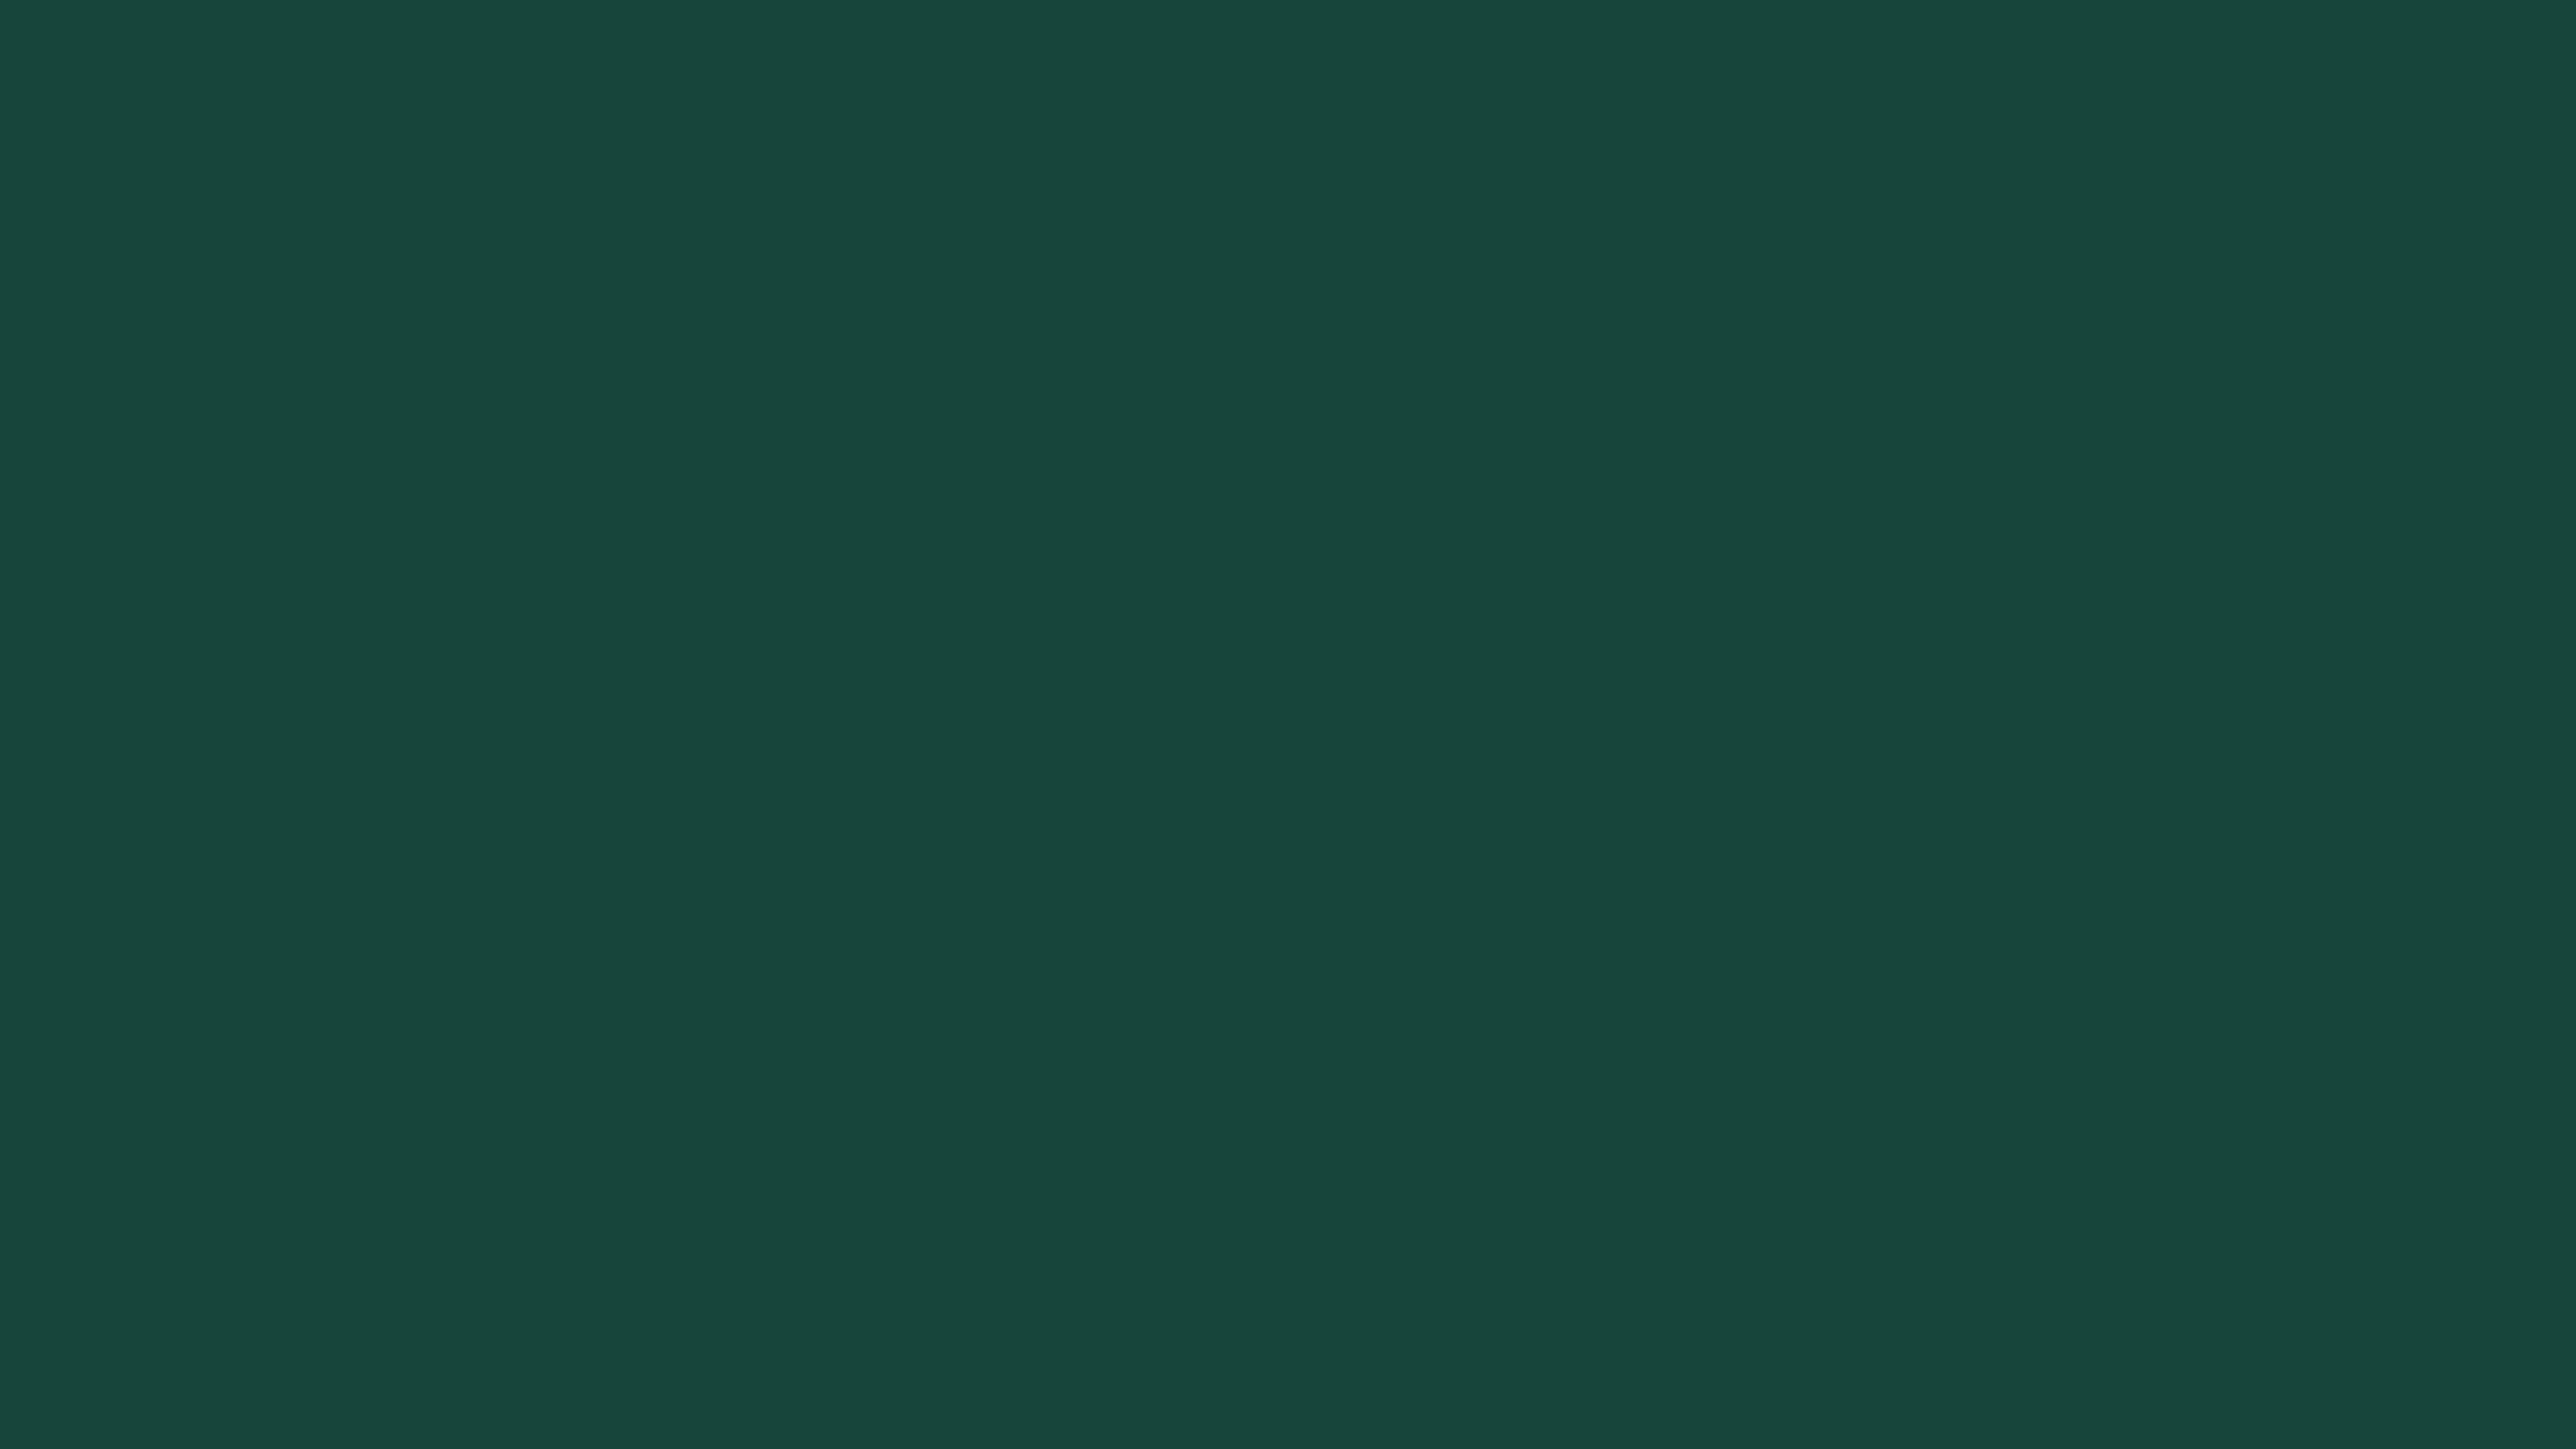 7680x4320 MSU Green Solid Color Background